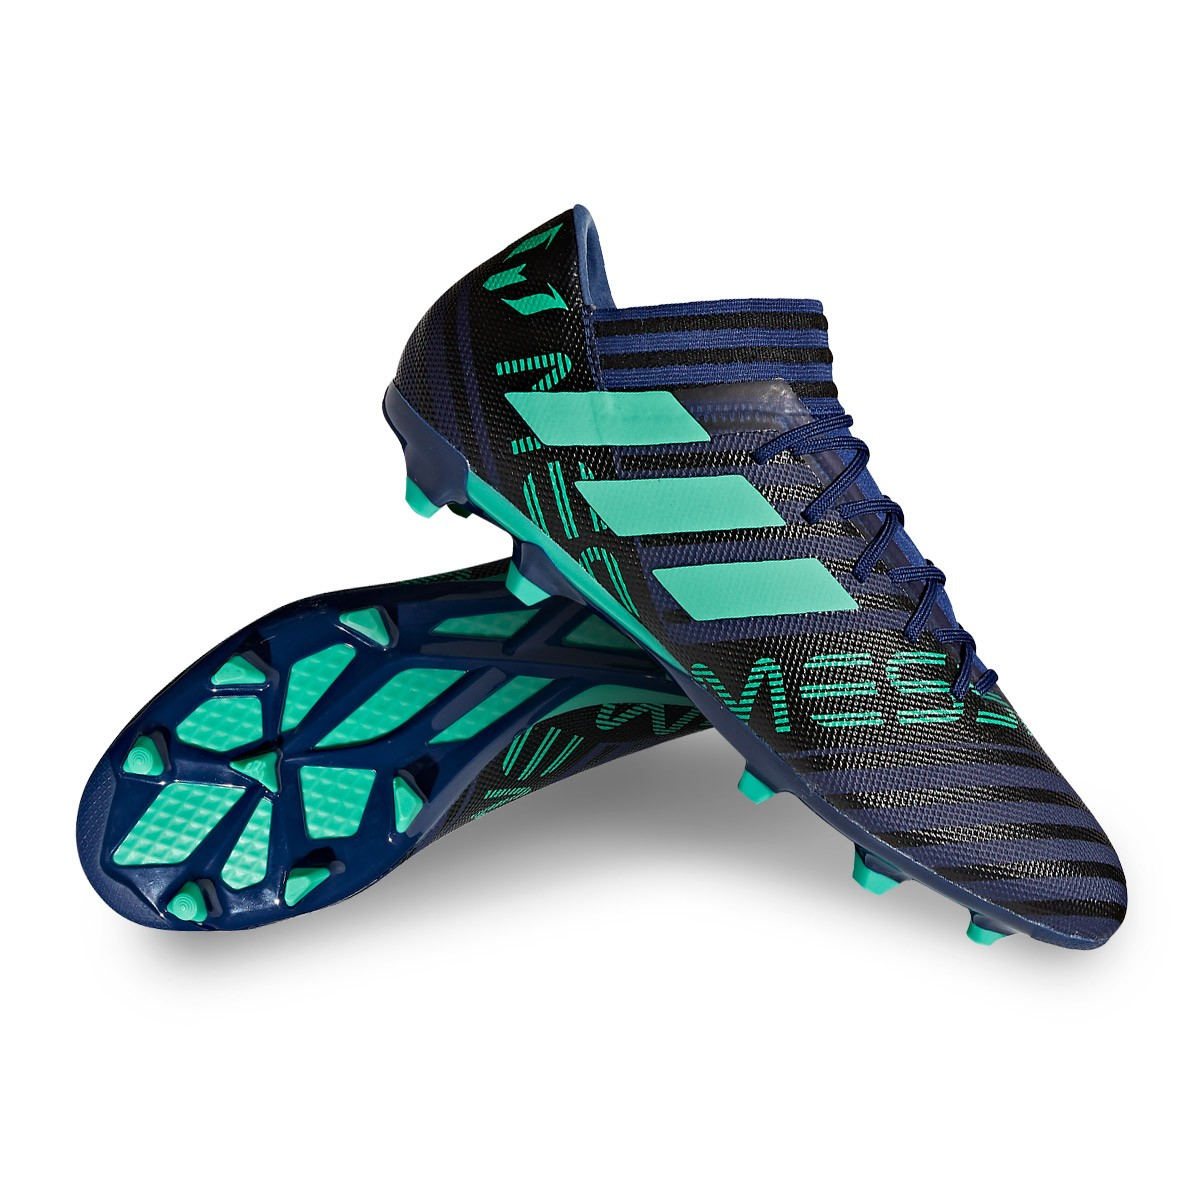 ef95a4e485d0 Football Boots adidas Nemeziz Messi 17.3 FG Unity ink-Hi-res green ...